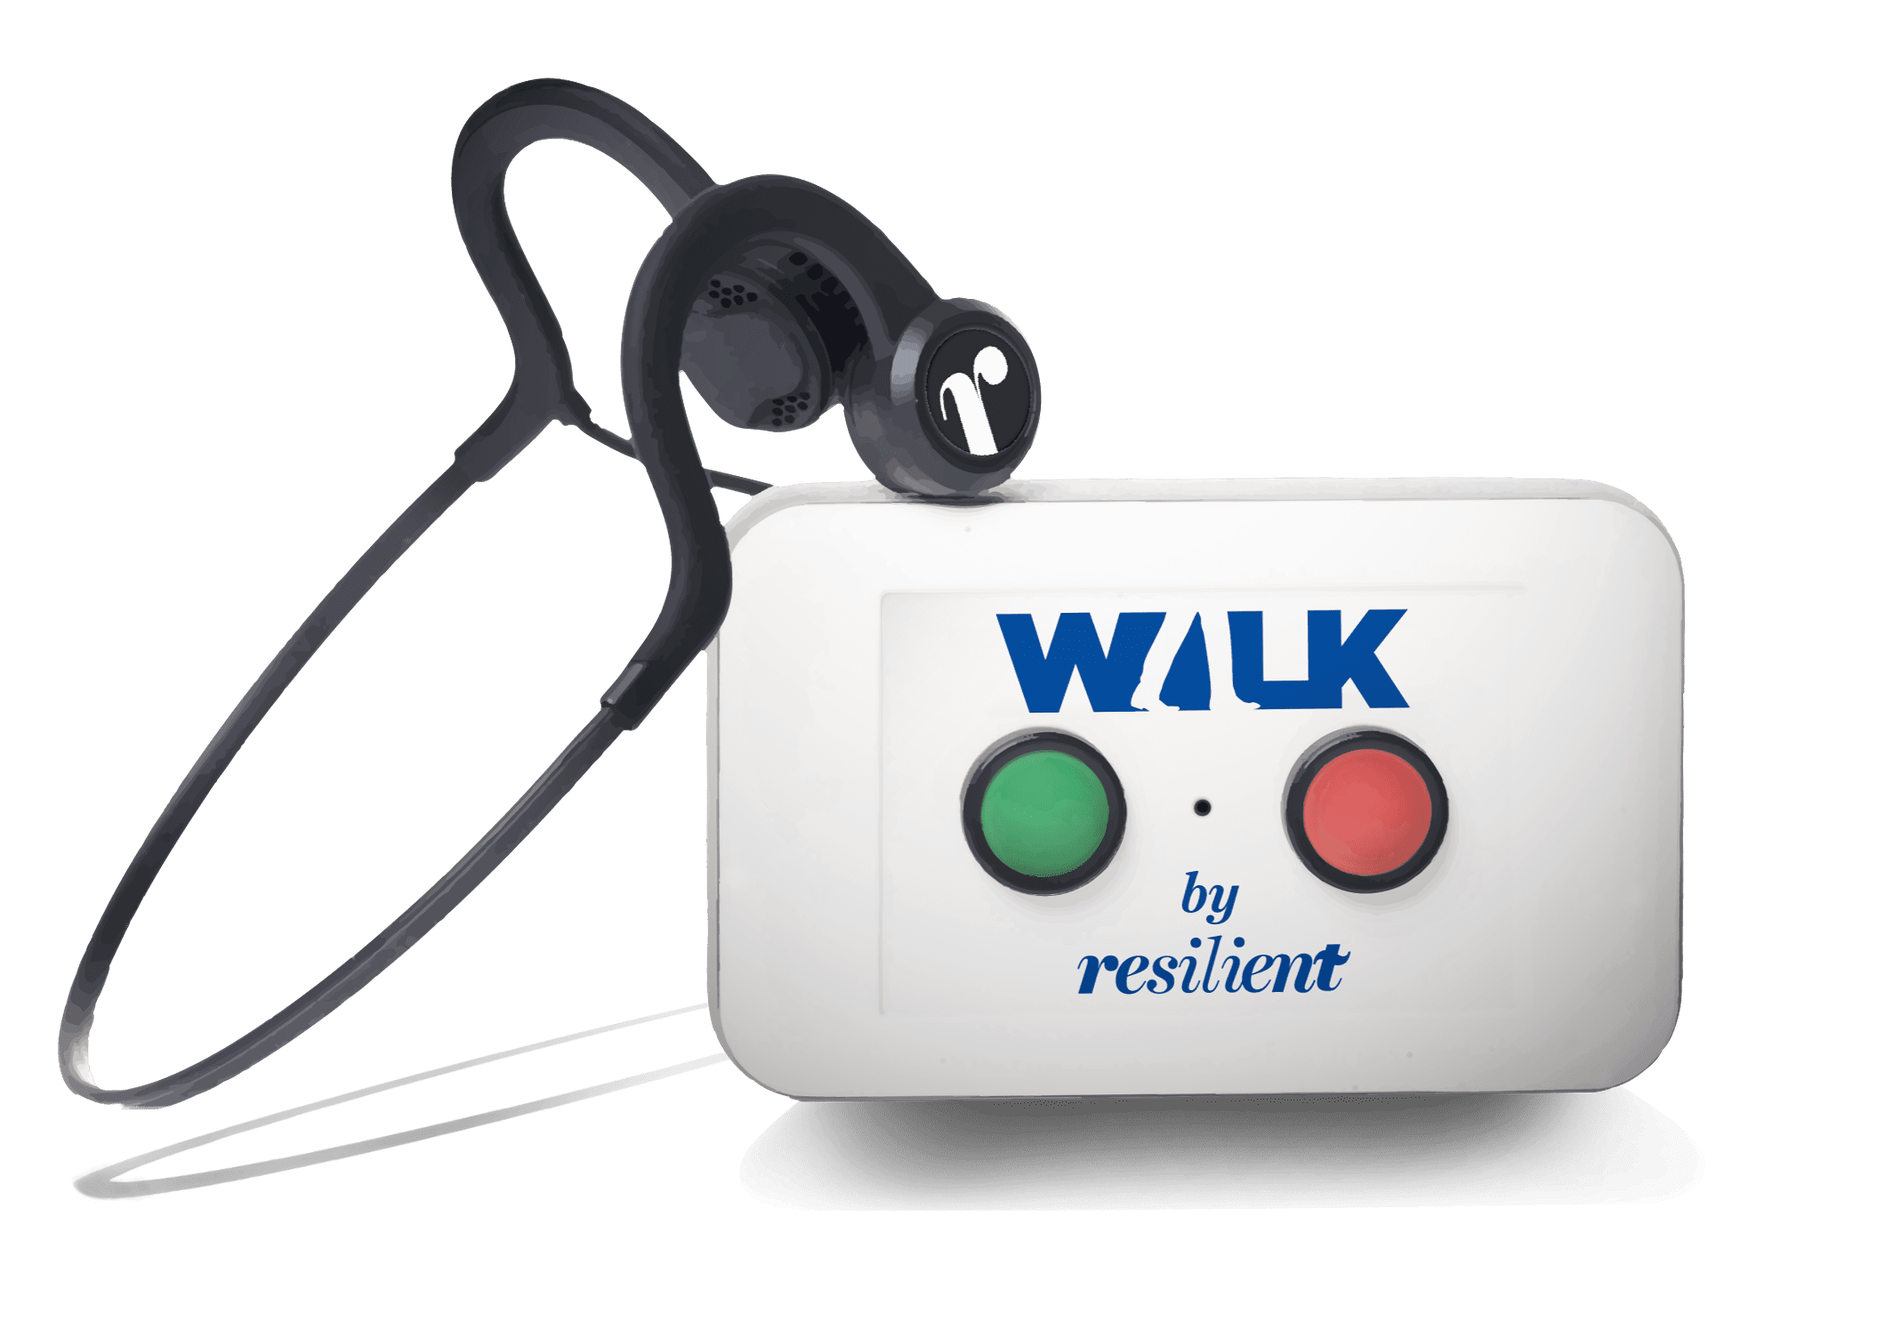 Walk by resilient.png